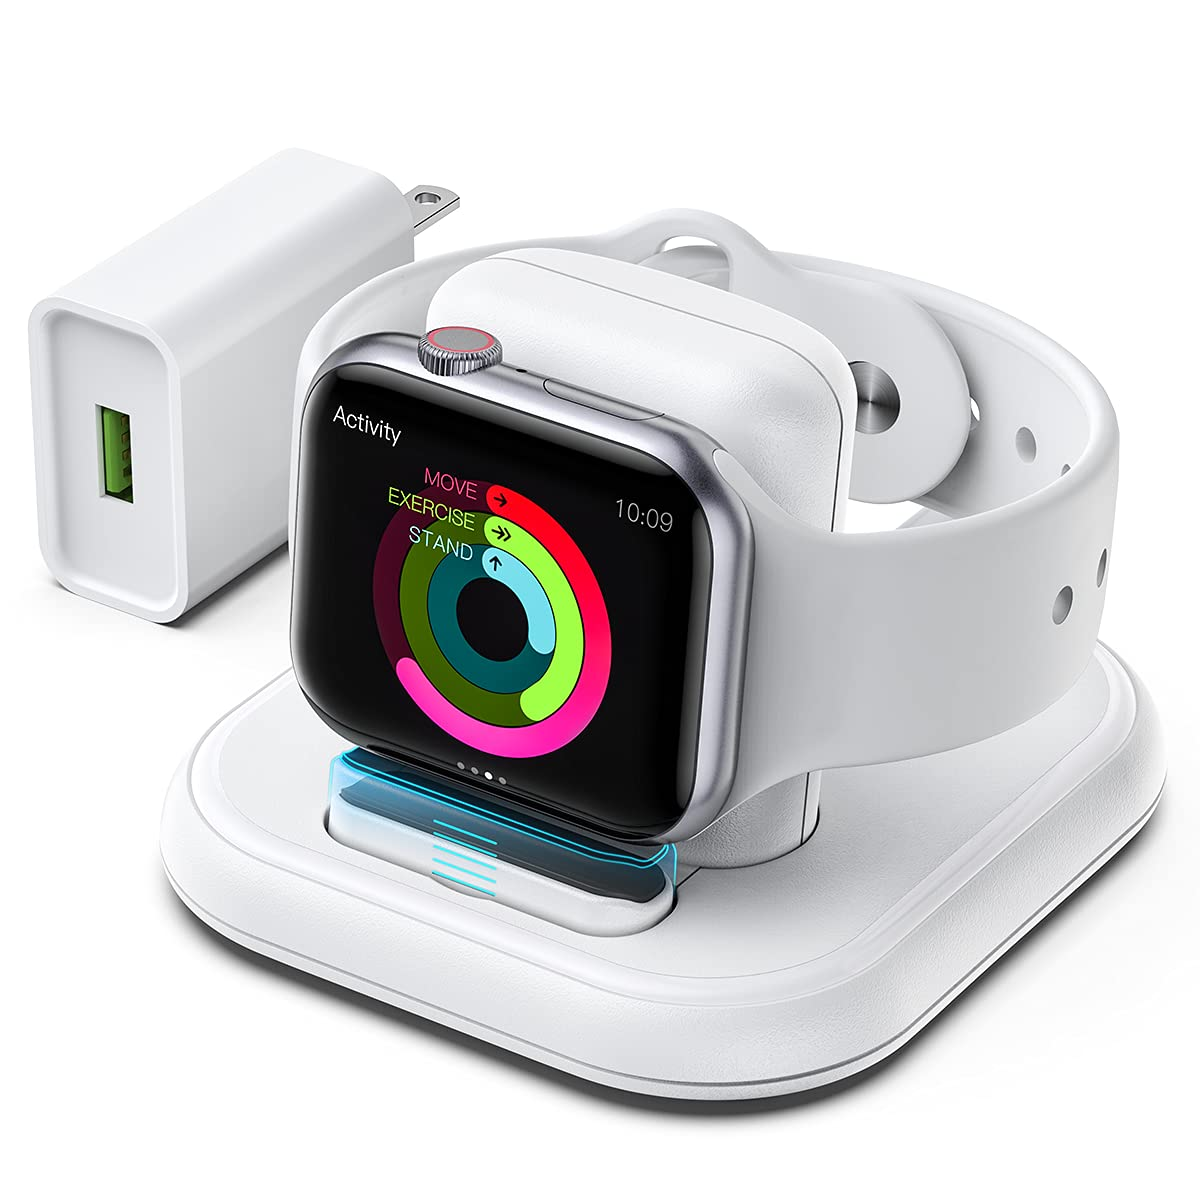 Lueruni Charger Stand for Apple Watch, Watch Charger Dock Compatible withiWatch Series SE/6/5/4/3/2/1/44/40/42/38mm, Built-in Magnetic Wireless Charging Station White (Include: Adapter& USB Cable)